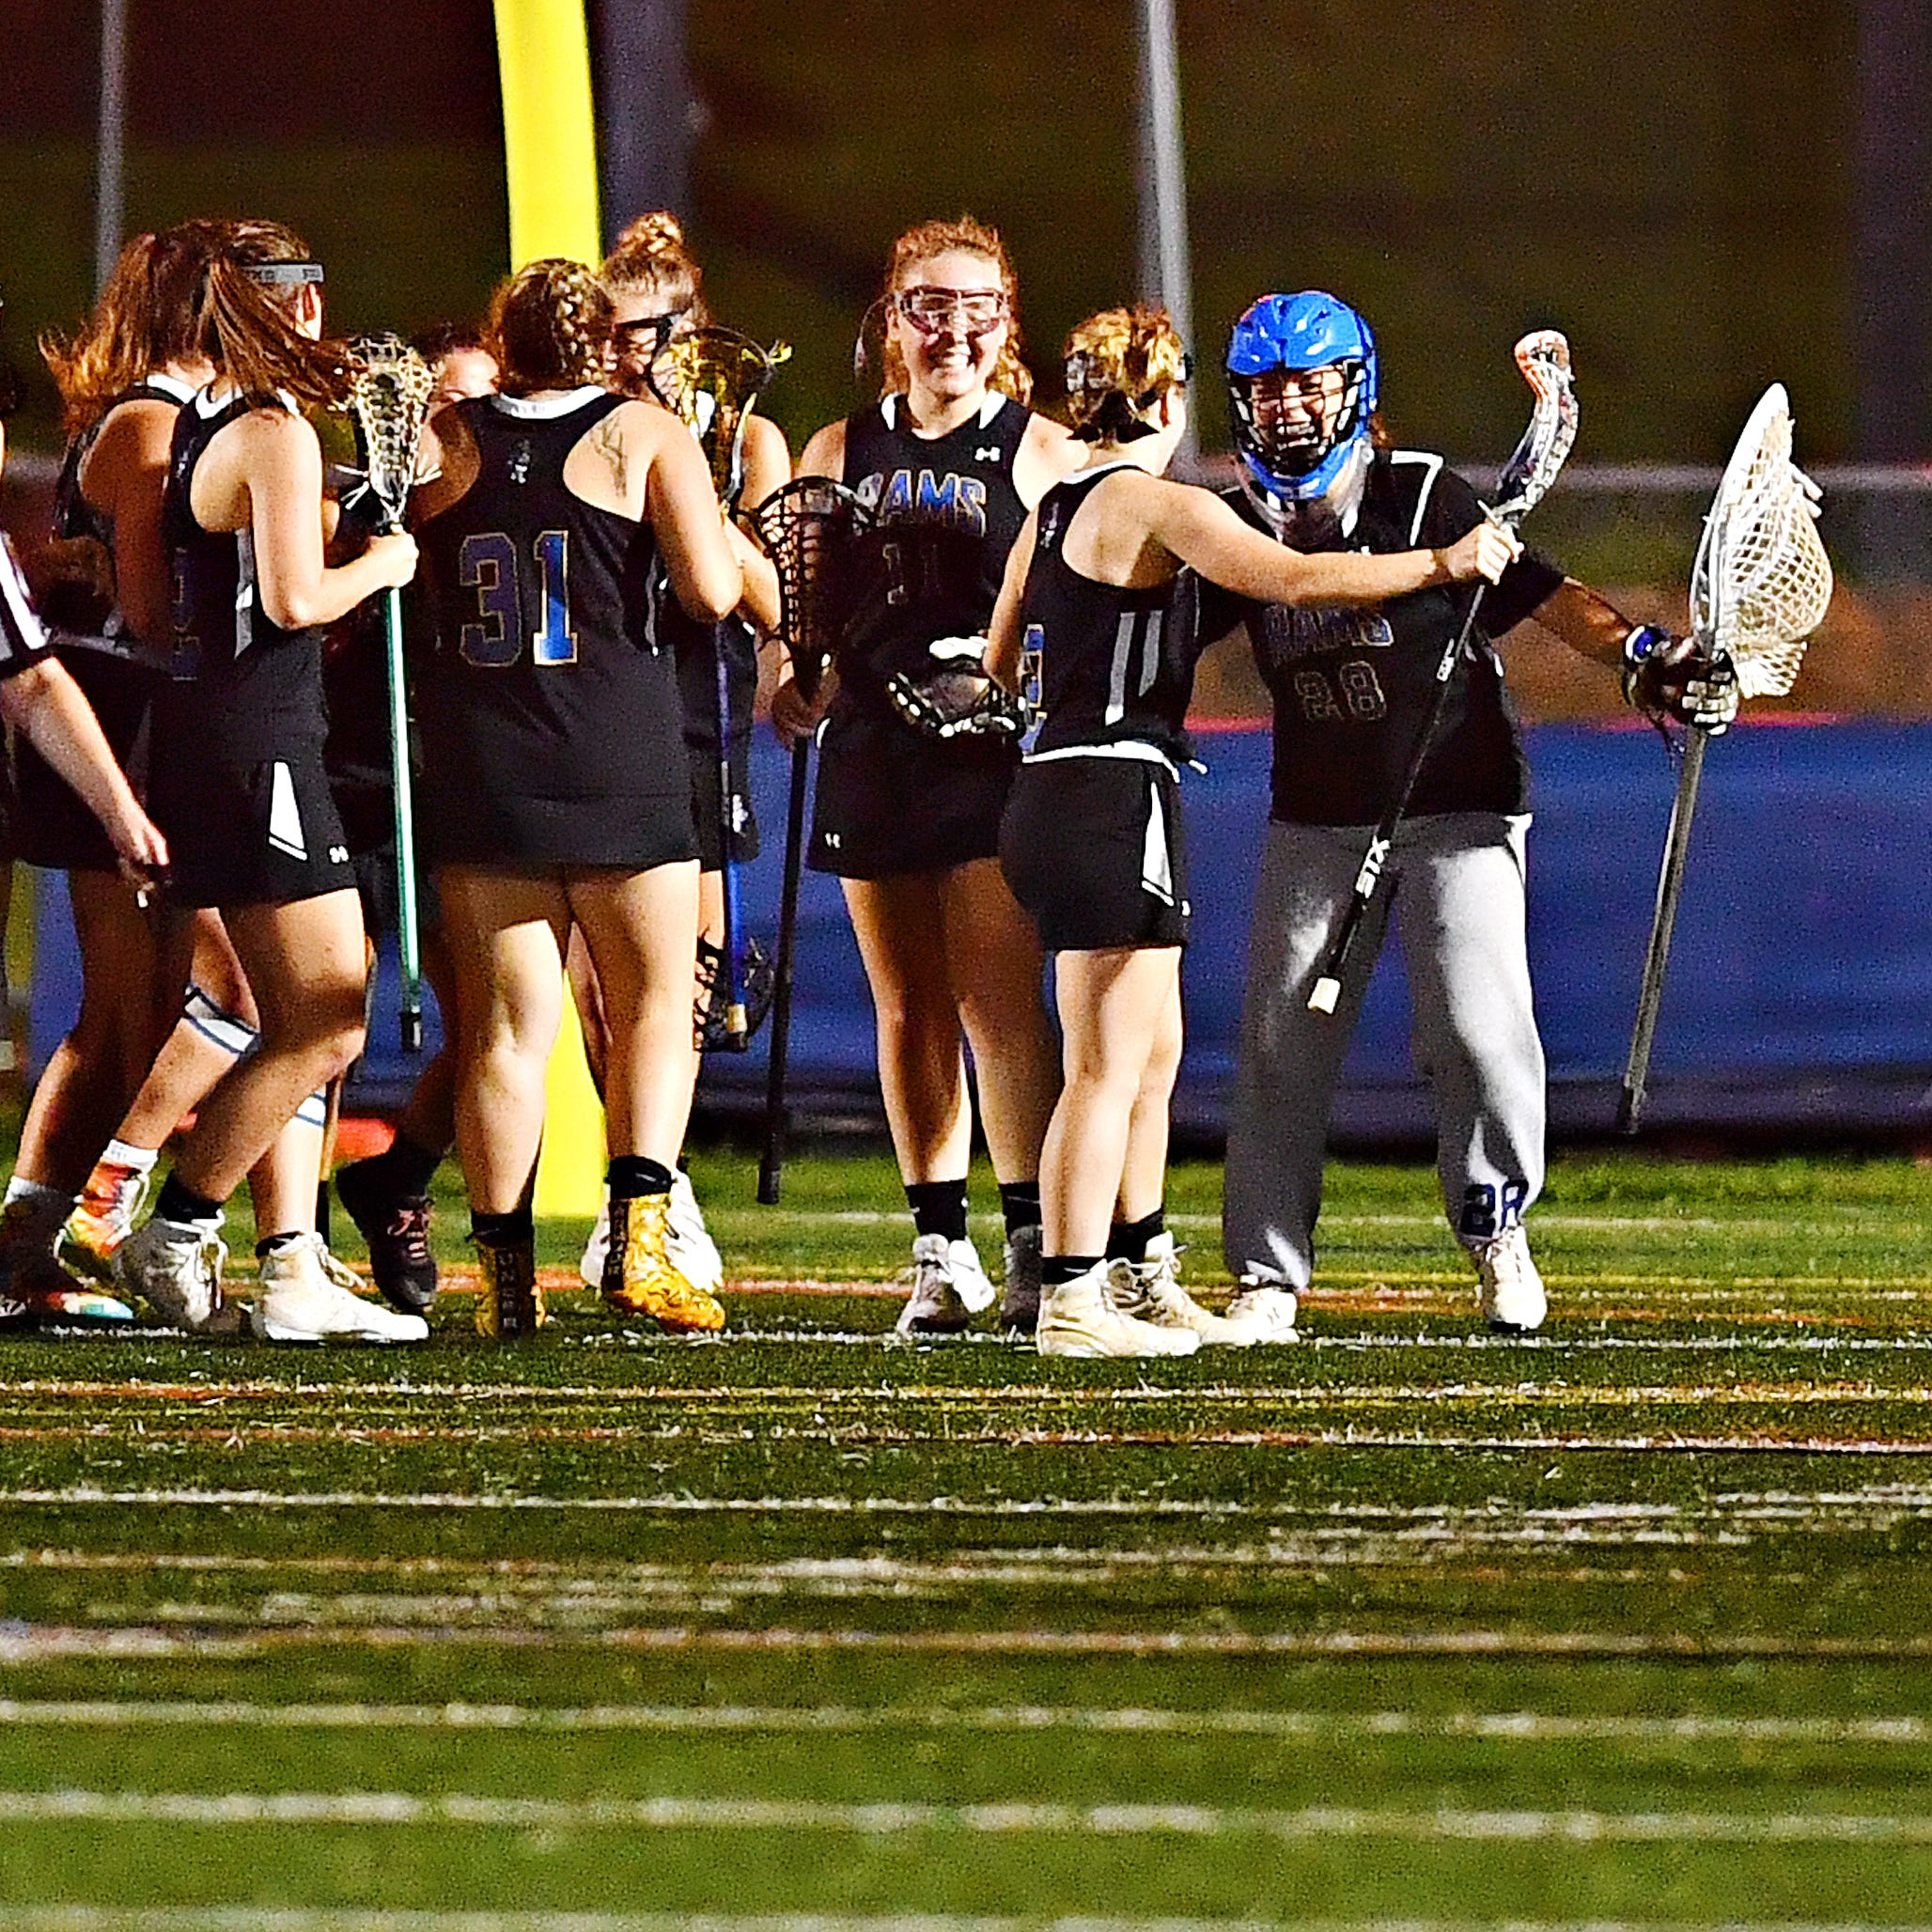 Kennard-Dale wins a fifth straight York-Adams girls' lacrosse playoff championship